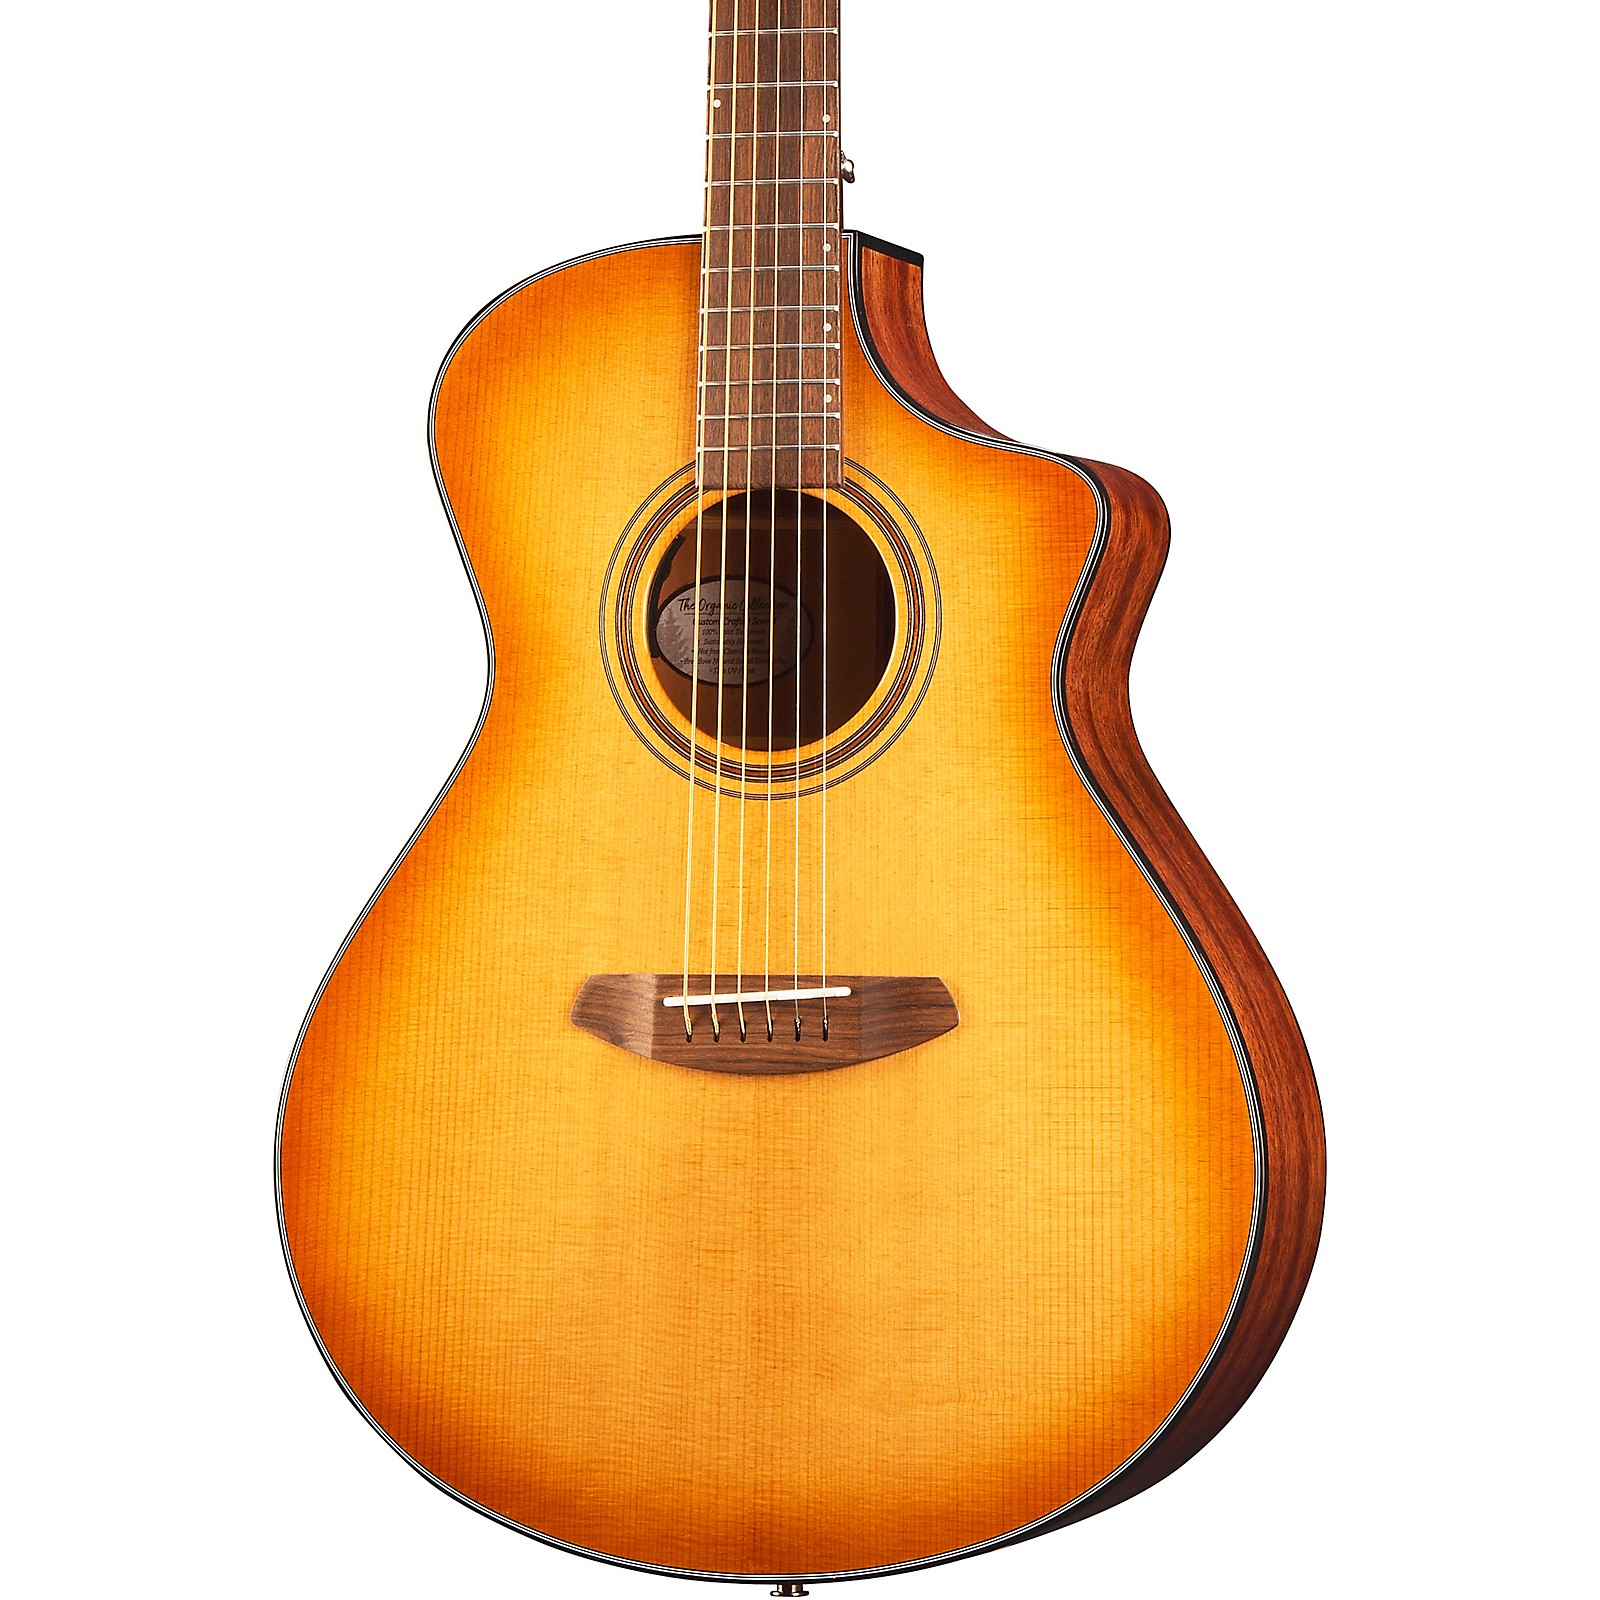 Breedlove Organic Collection Signature Concert Cutaway CE Acoustic-Electric Guitar